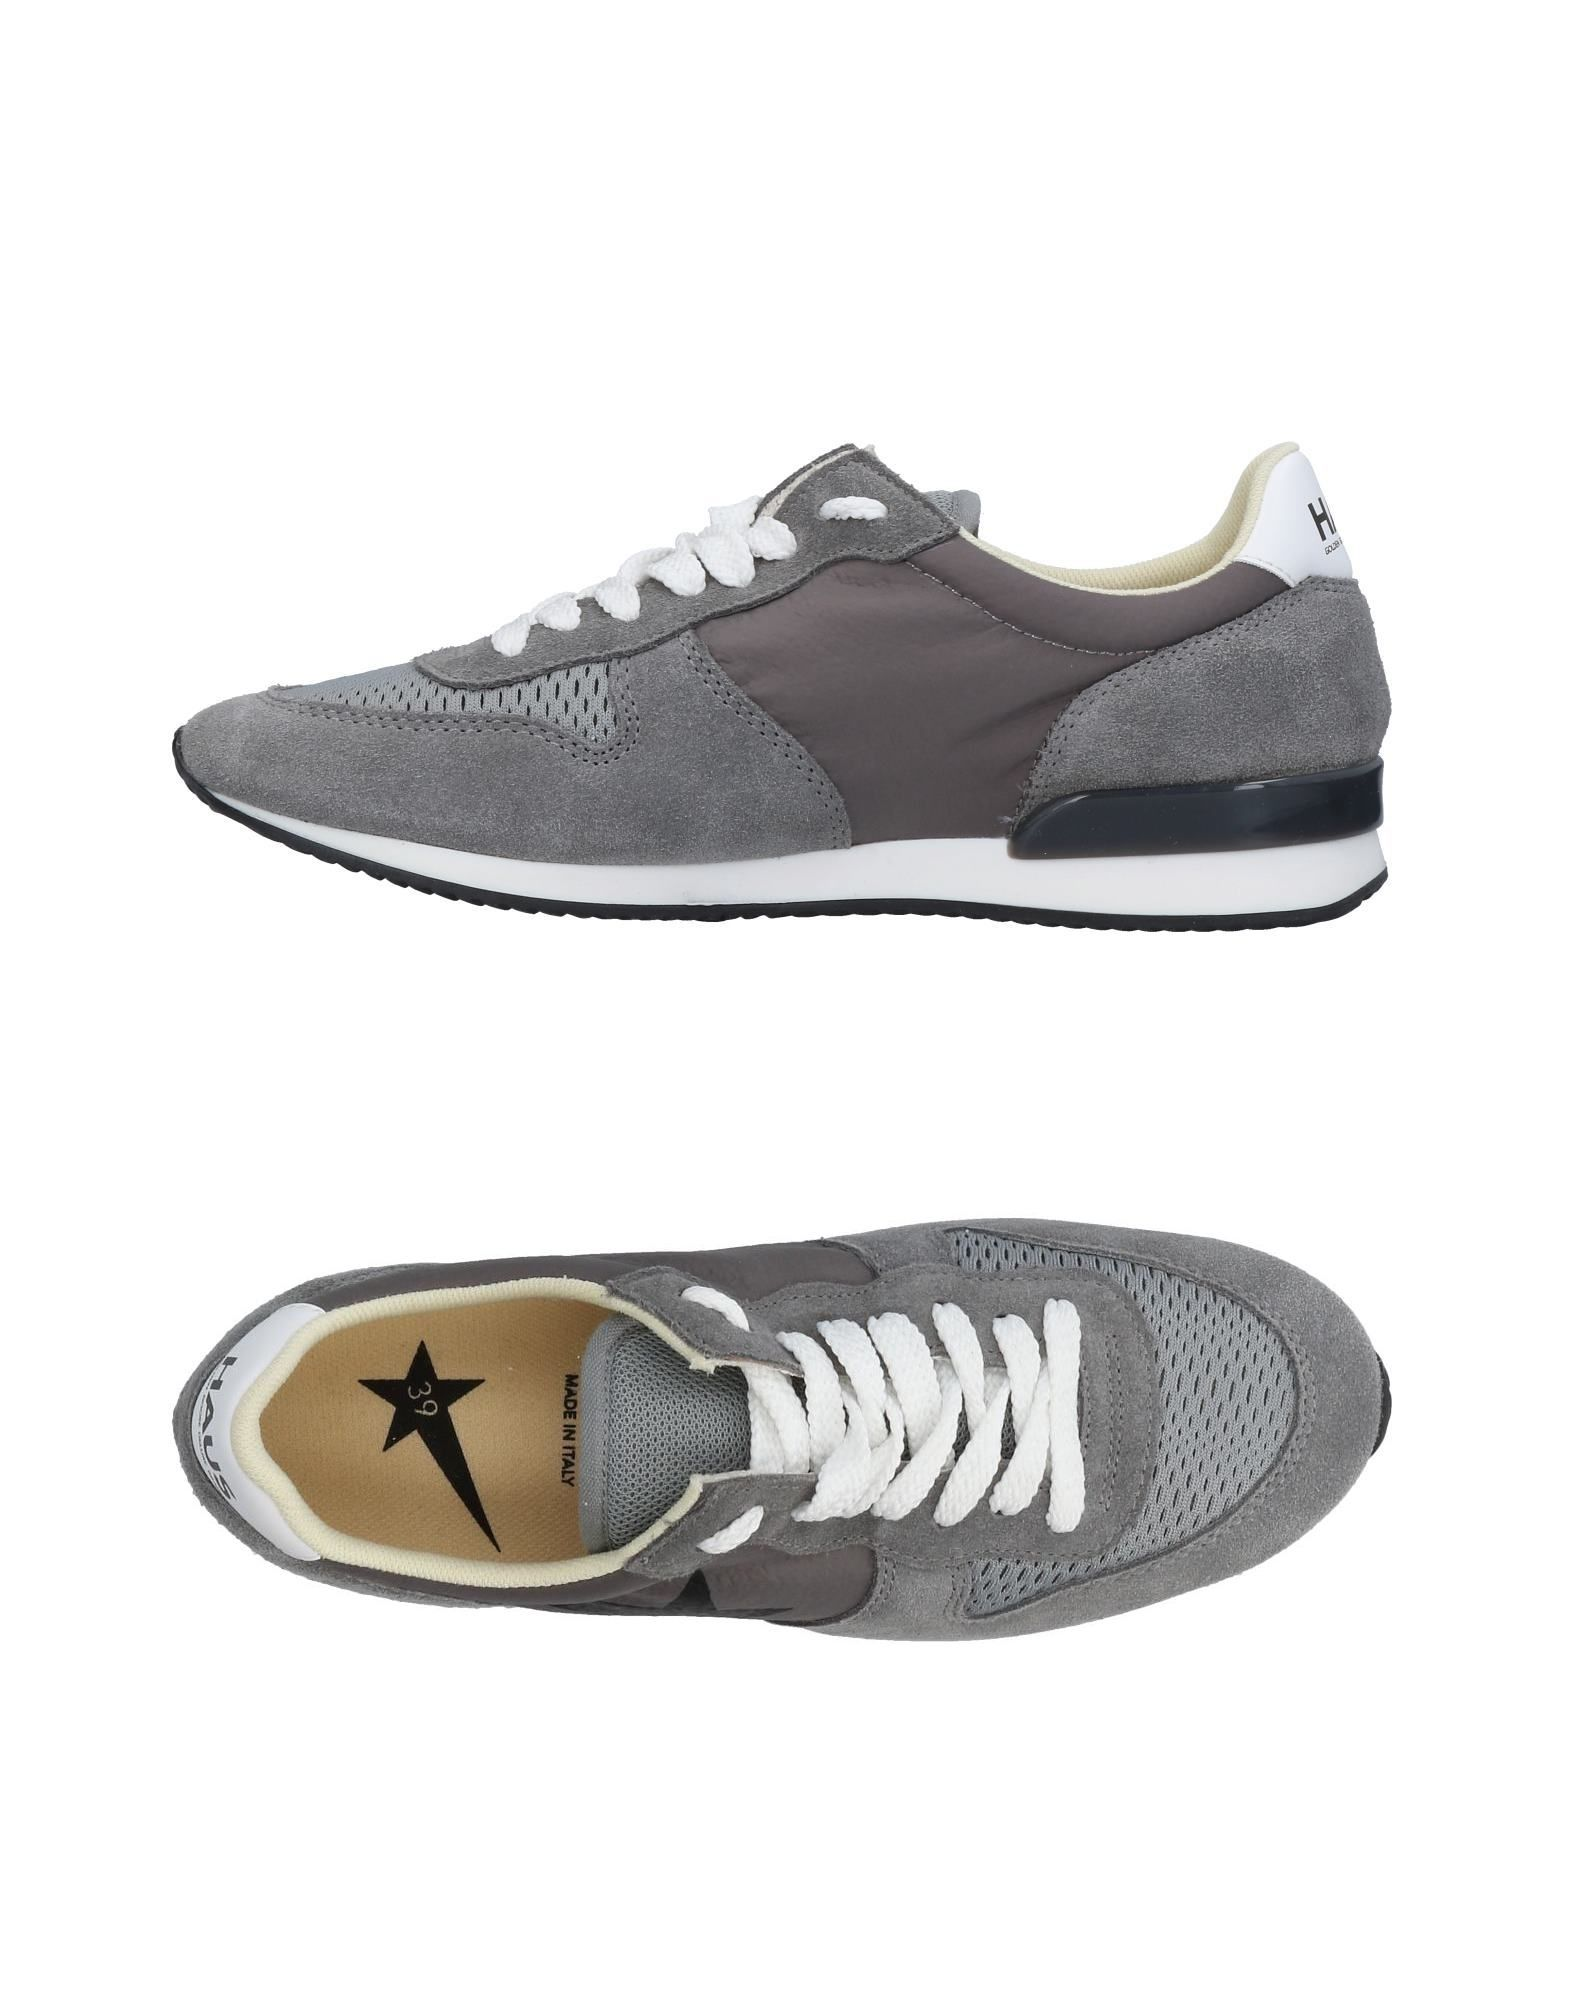 Sneakers Haus Golden Goose Uomo - Acquista online su